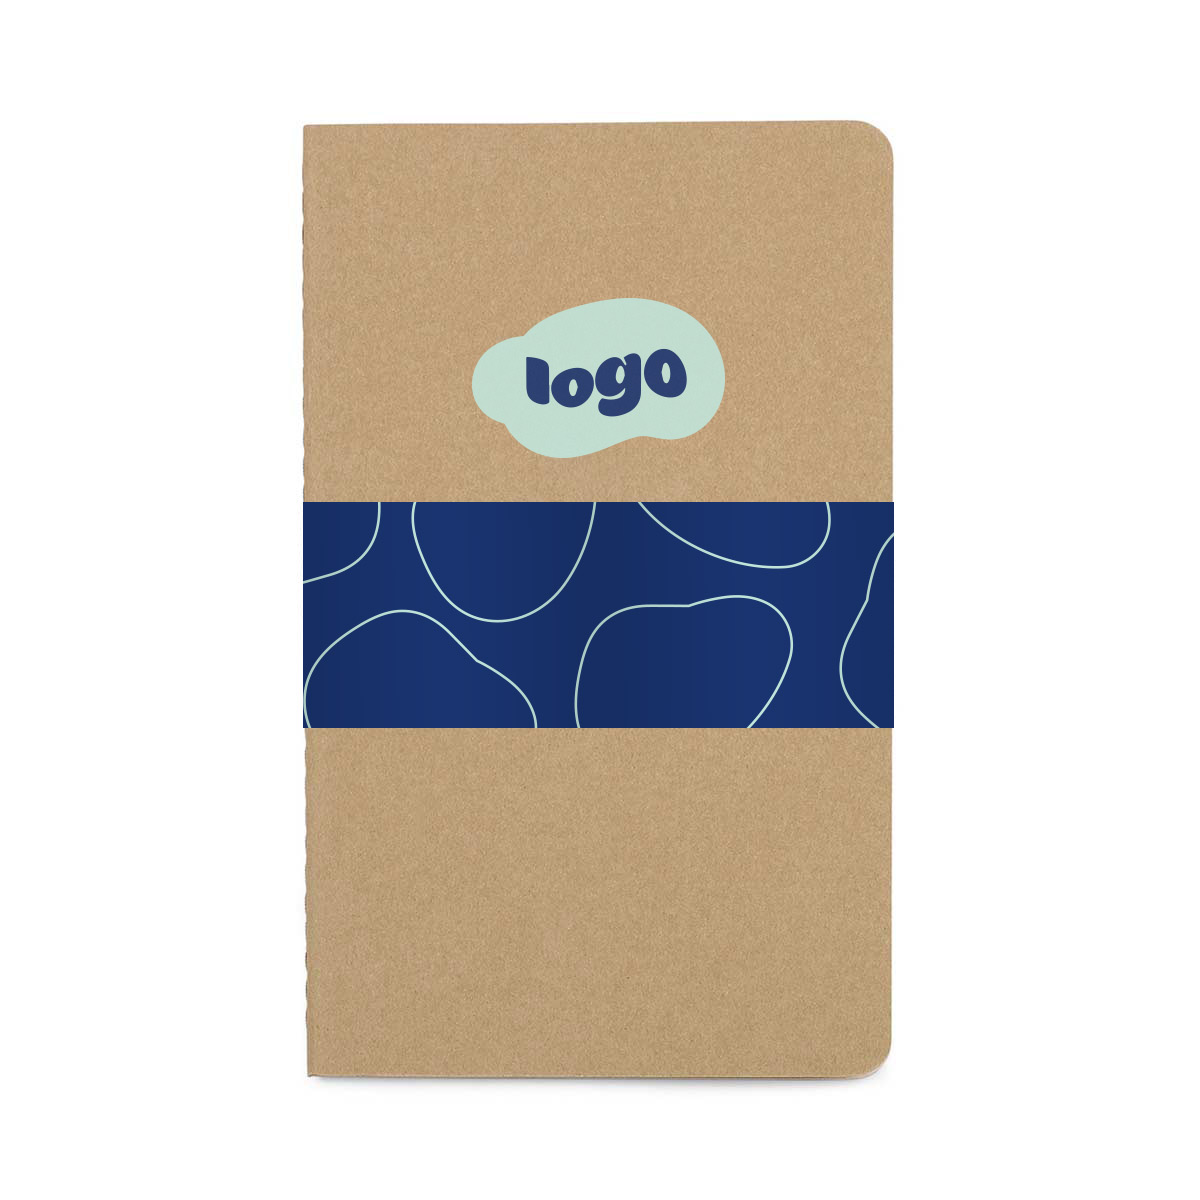 269646 cahier grid large notebook full color belly band two color one location imprint